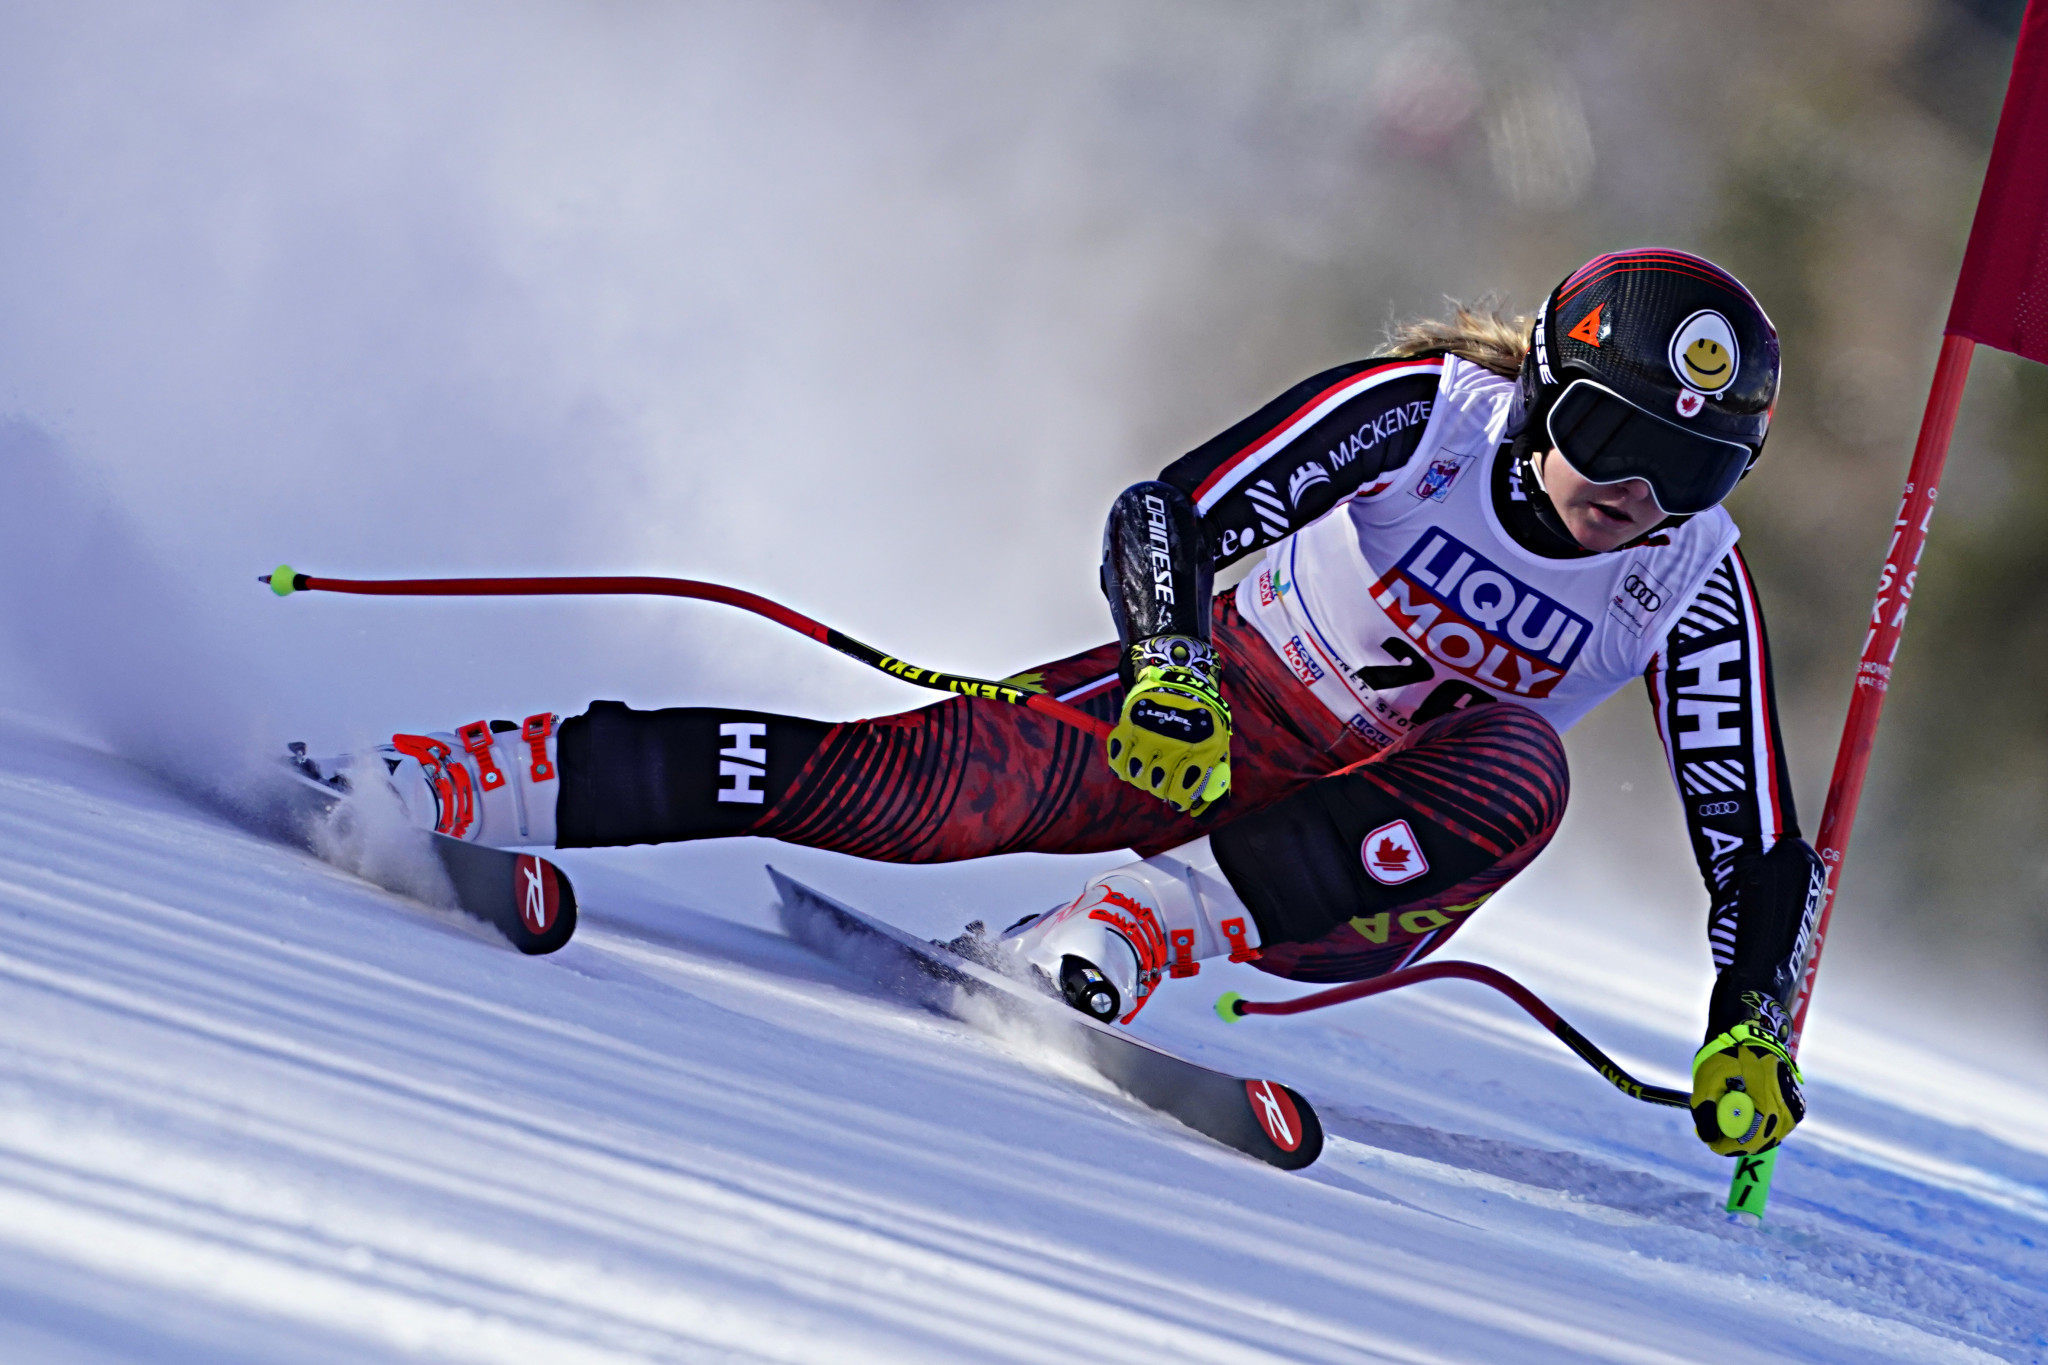 Alpine Canada confirm Grenier return to full training after injury